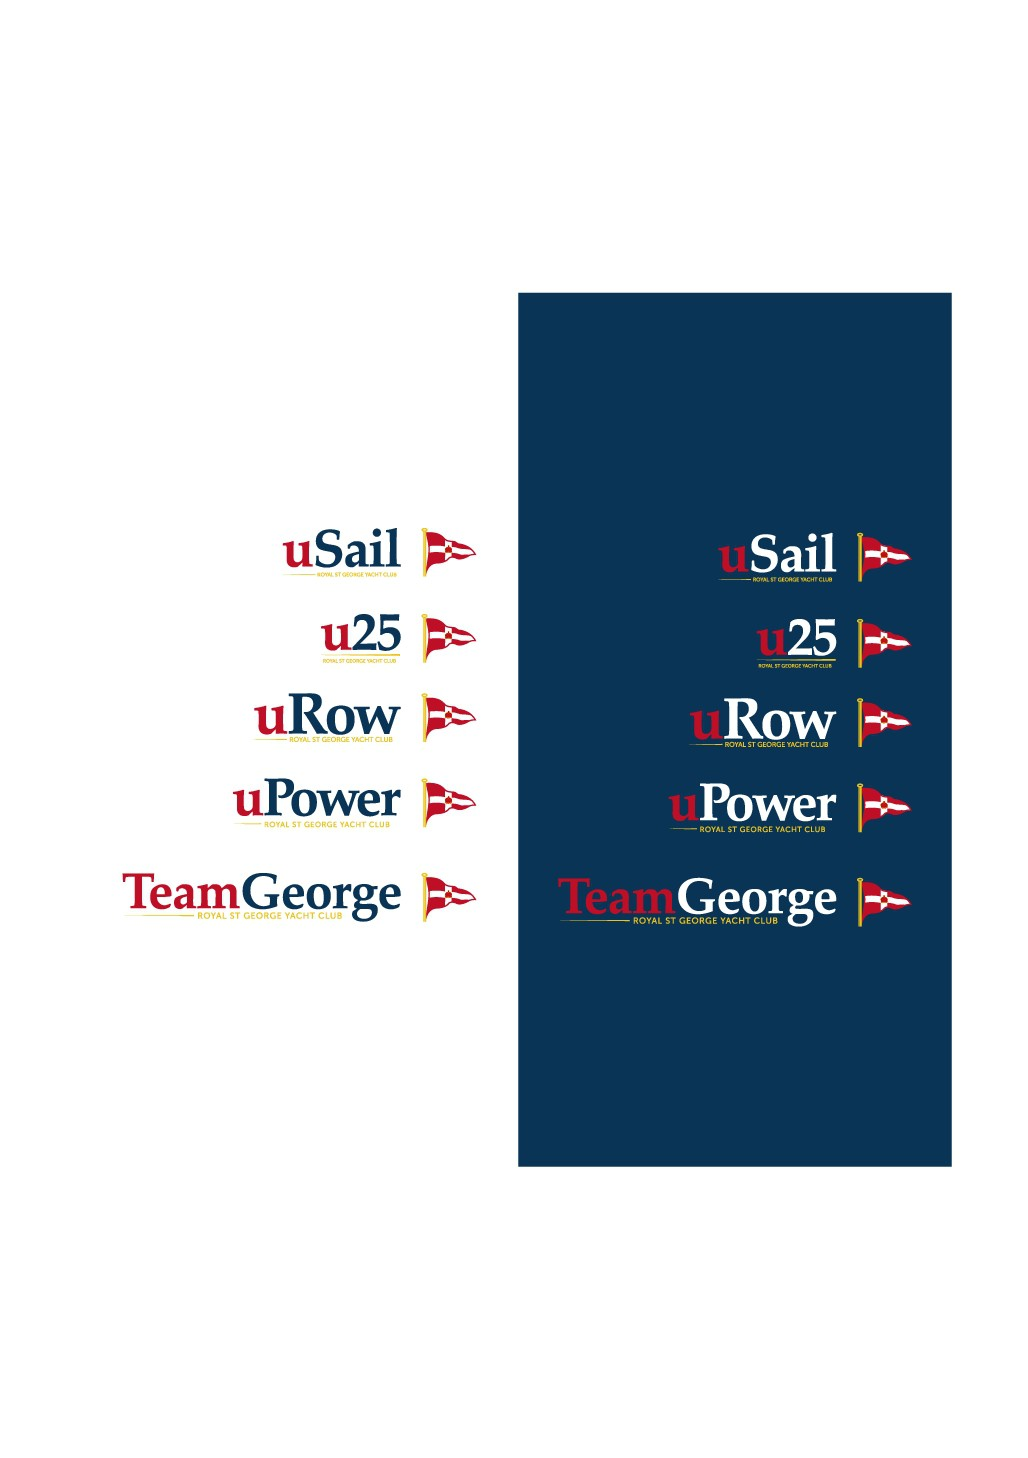 Slogan designs for a family friendly, Irish sailing club